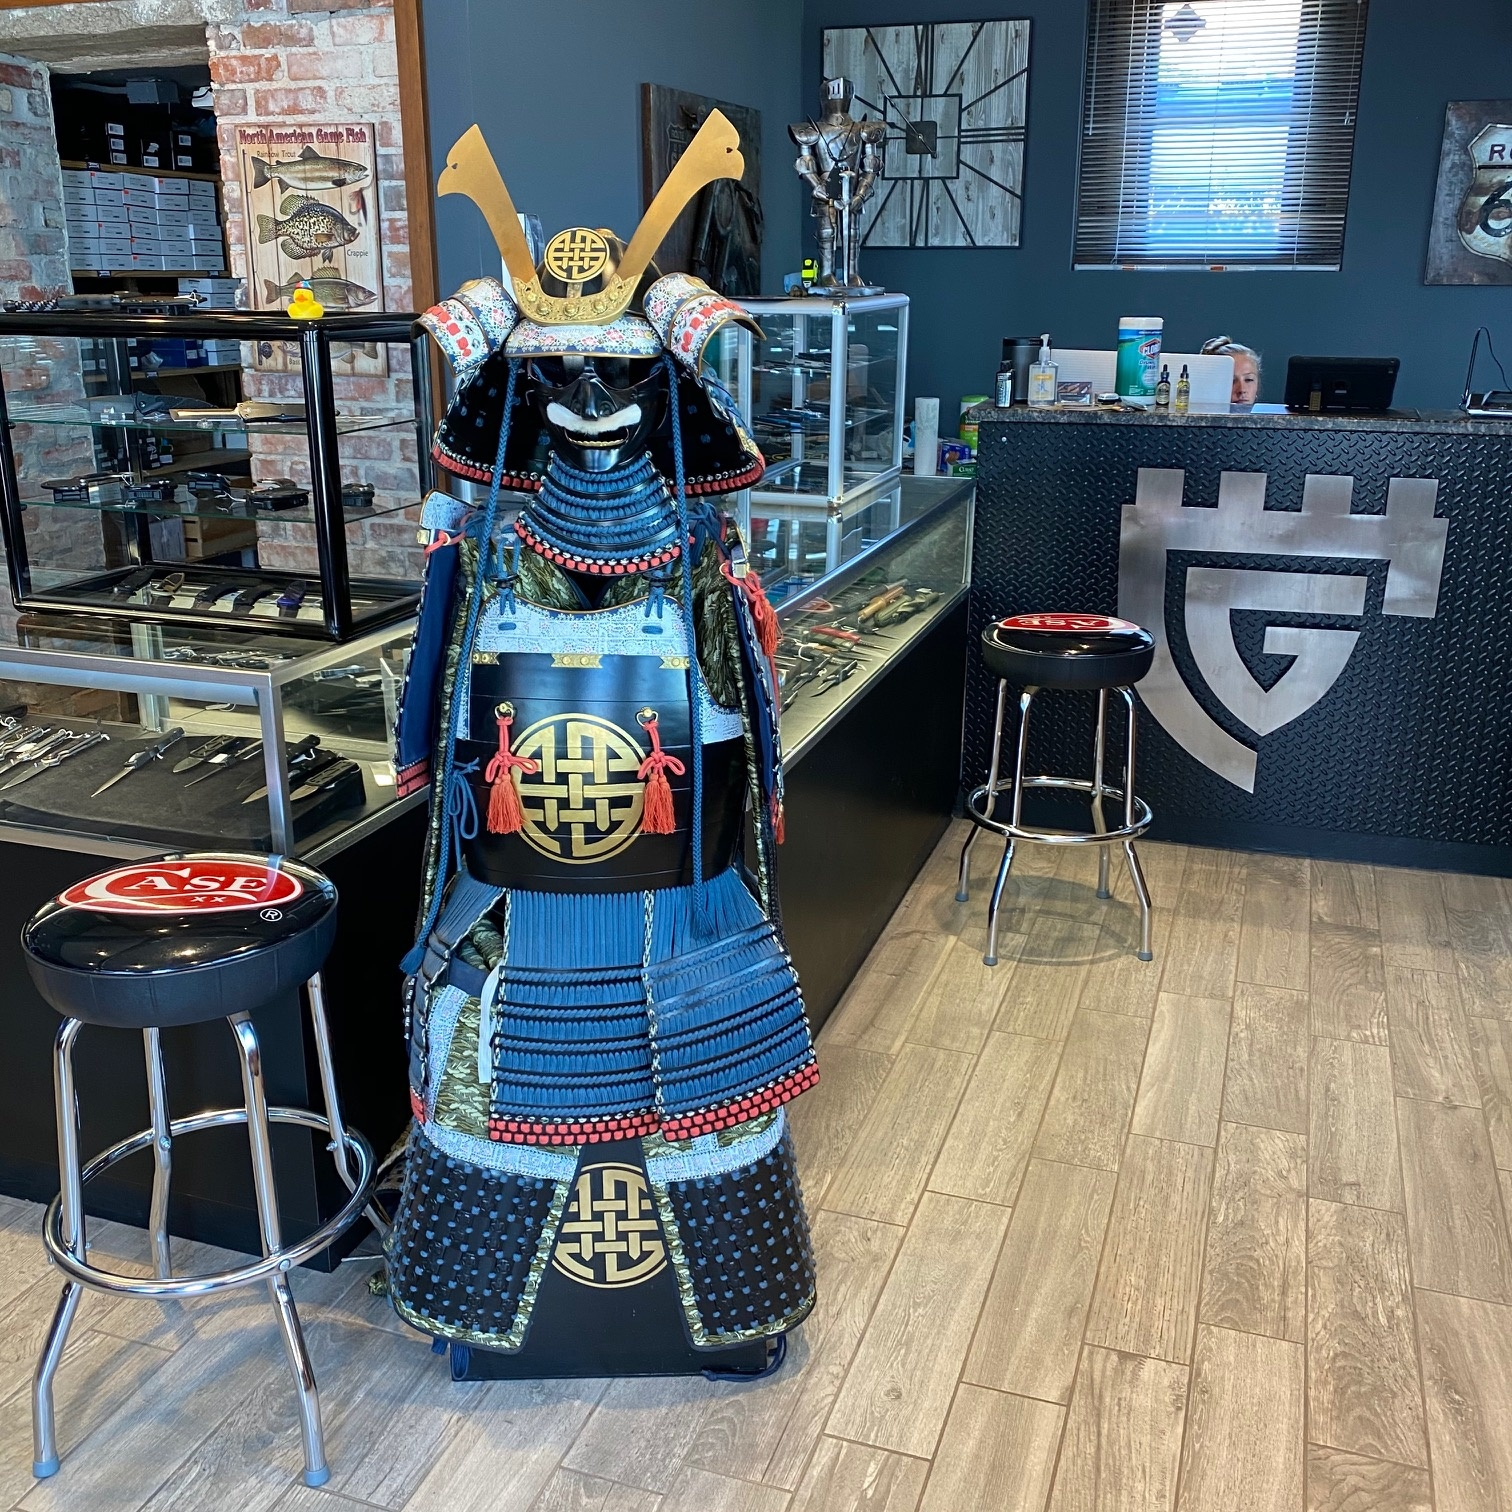 Sammy the Samurai Guarding the Store